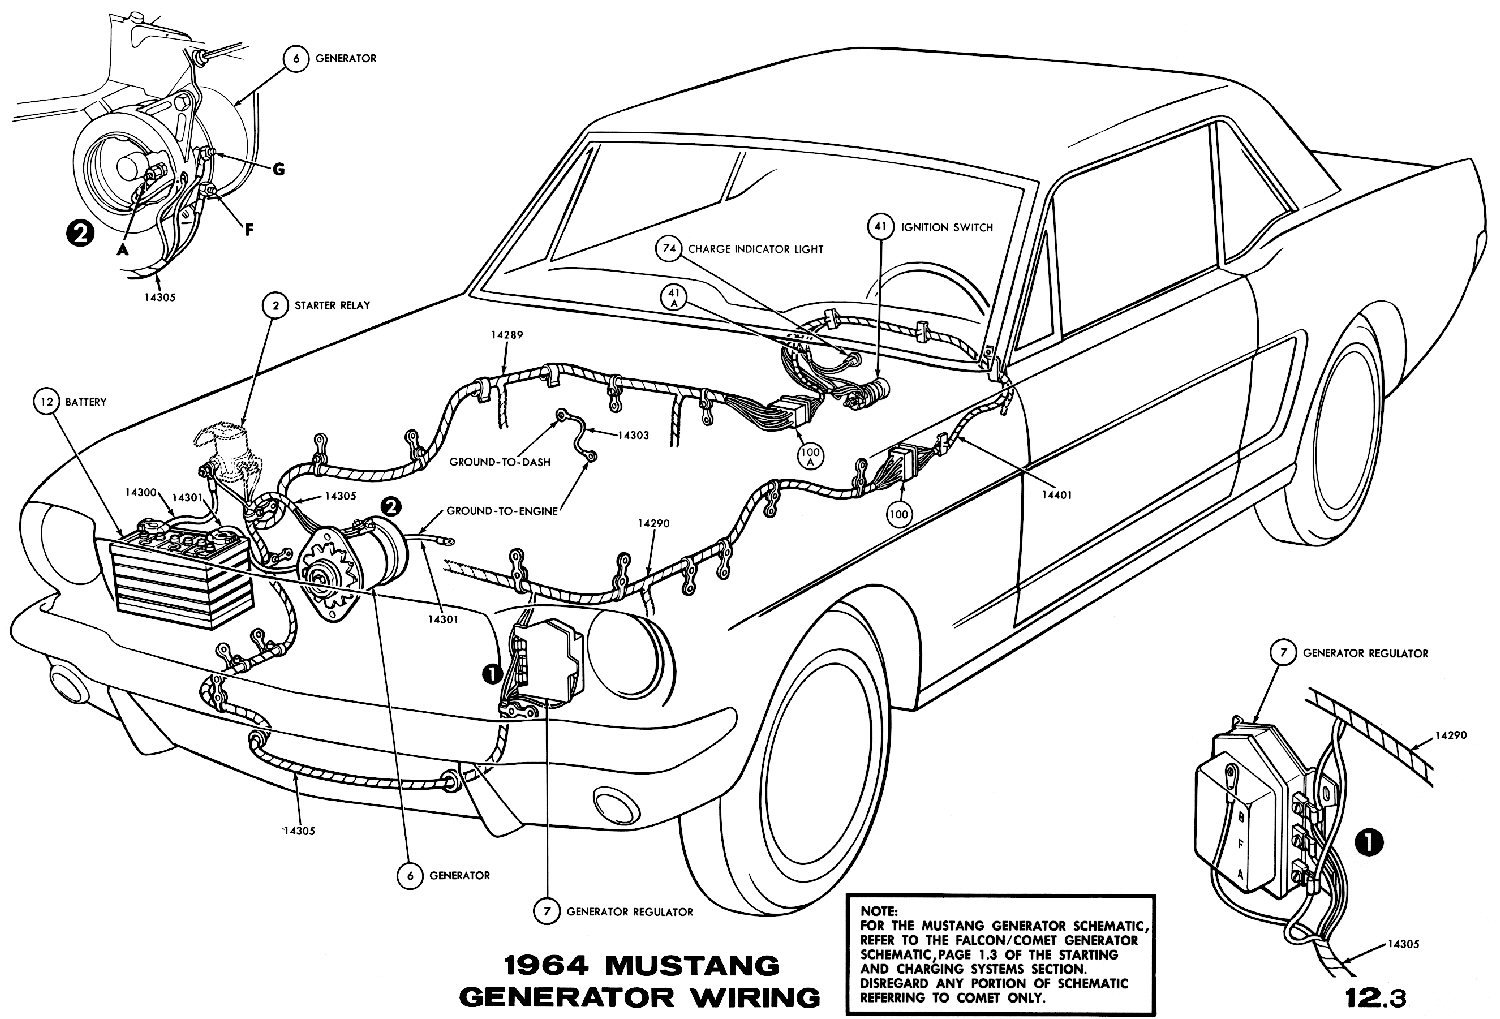 mustang ignition wiring diagram 1964 mustang wiring diagrams average joe restoration sm1964f 1964 mustang generator wiring pictorial or schematic